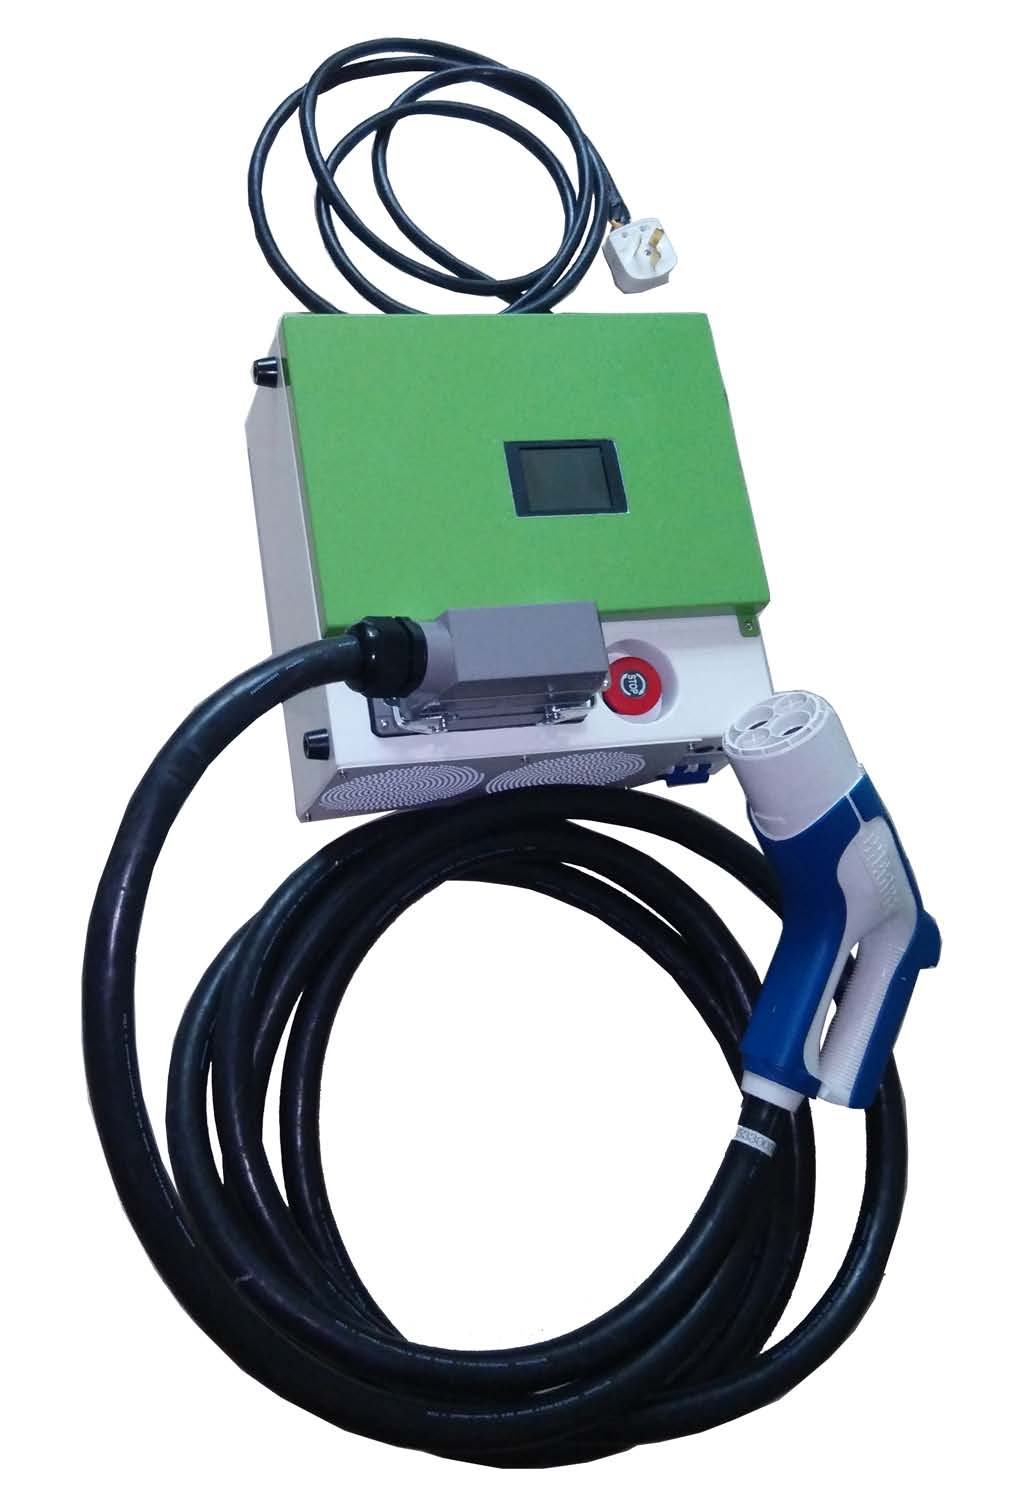 6-12kW%20mobile%20fast%20charger%20catalogue.jpg